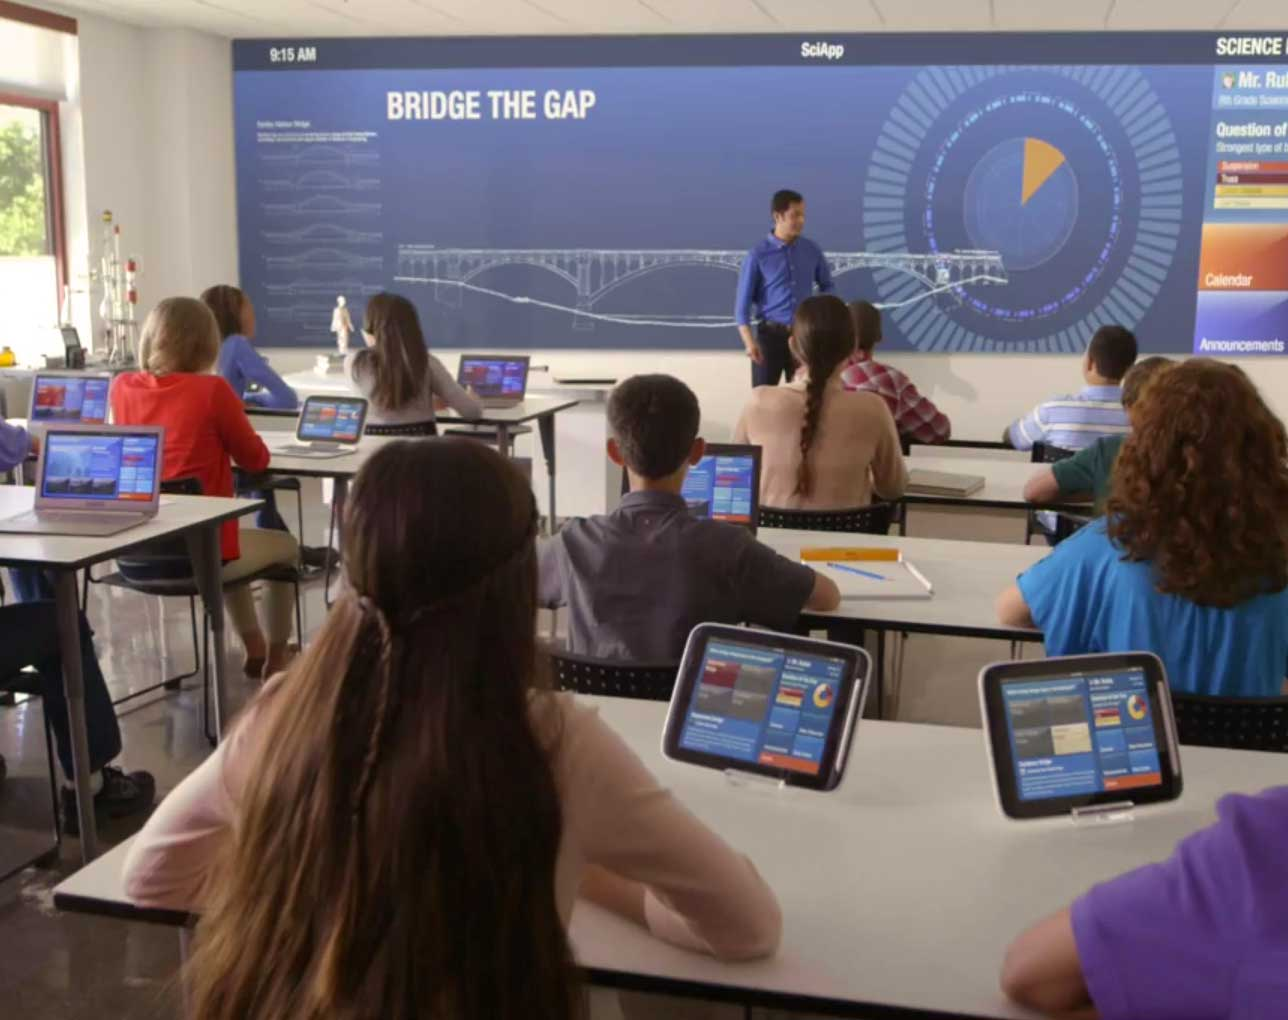 school-wireless-networks-using-tablets-in-the-classroom, wifi service providers,